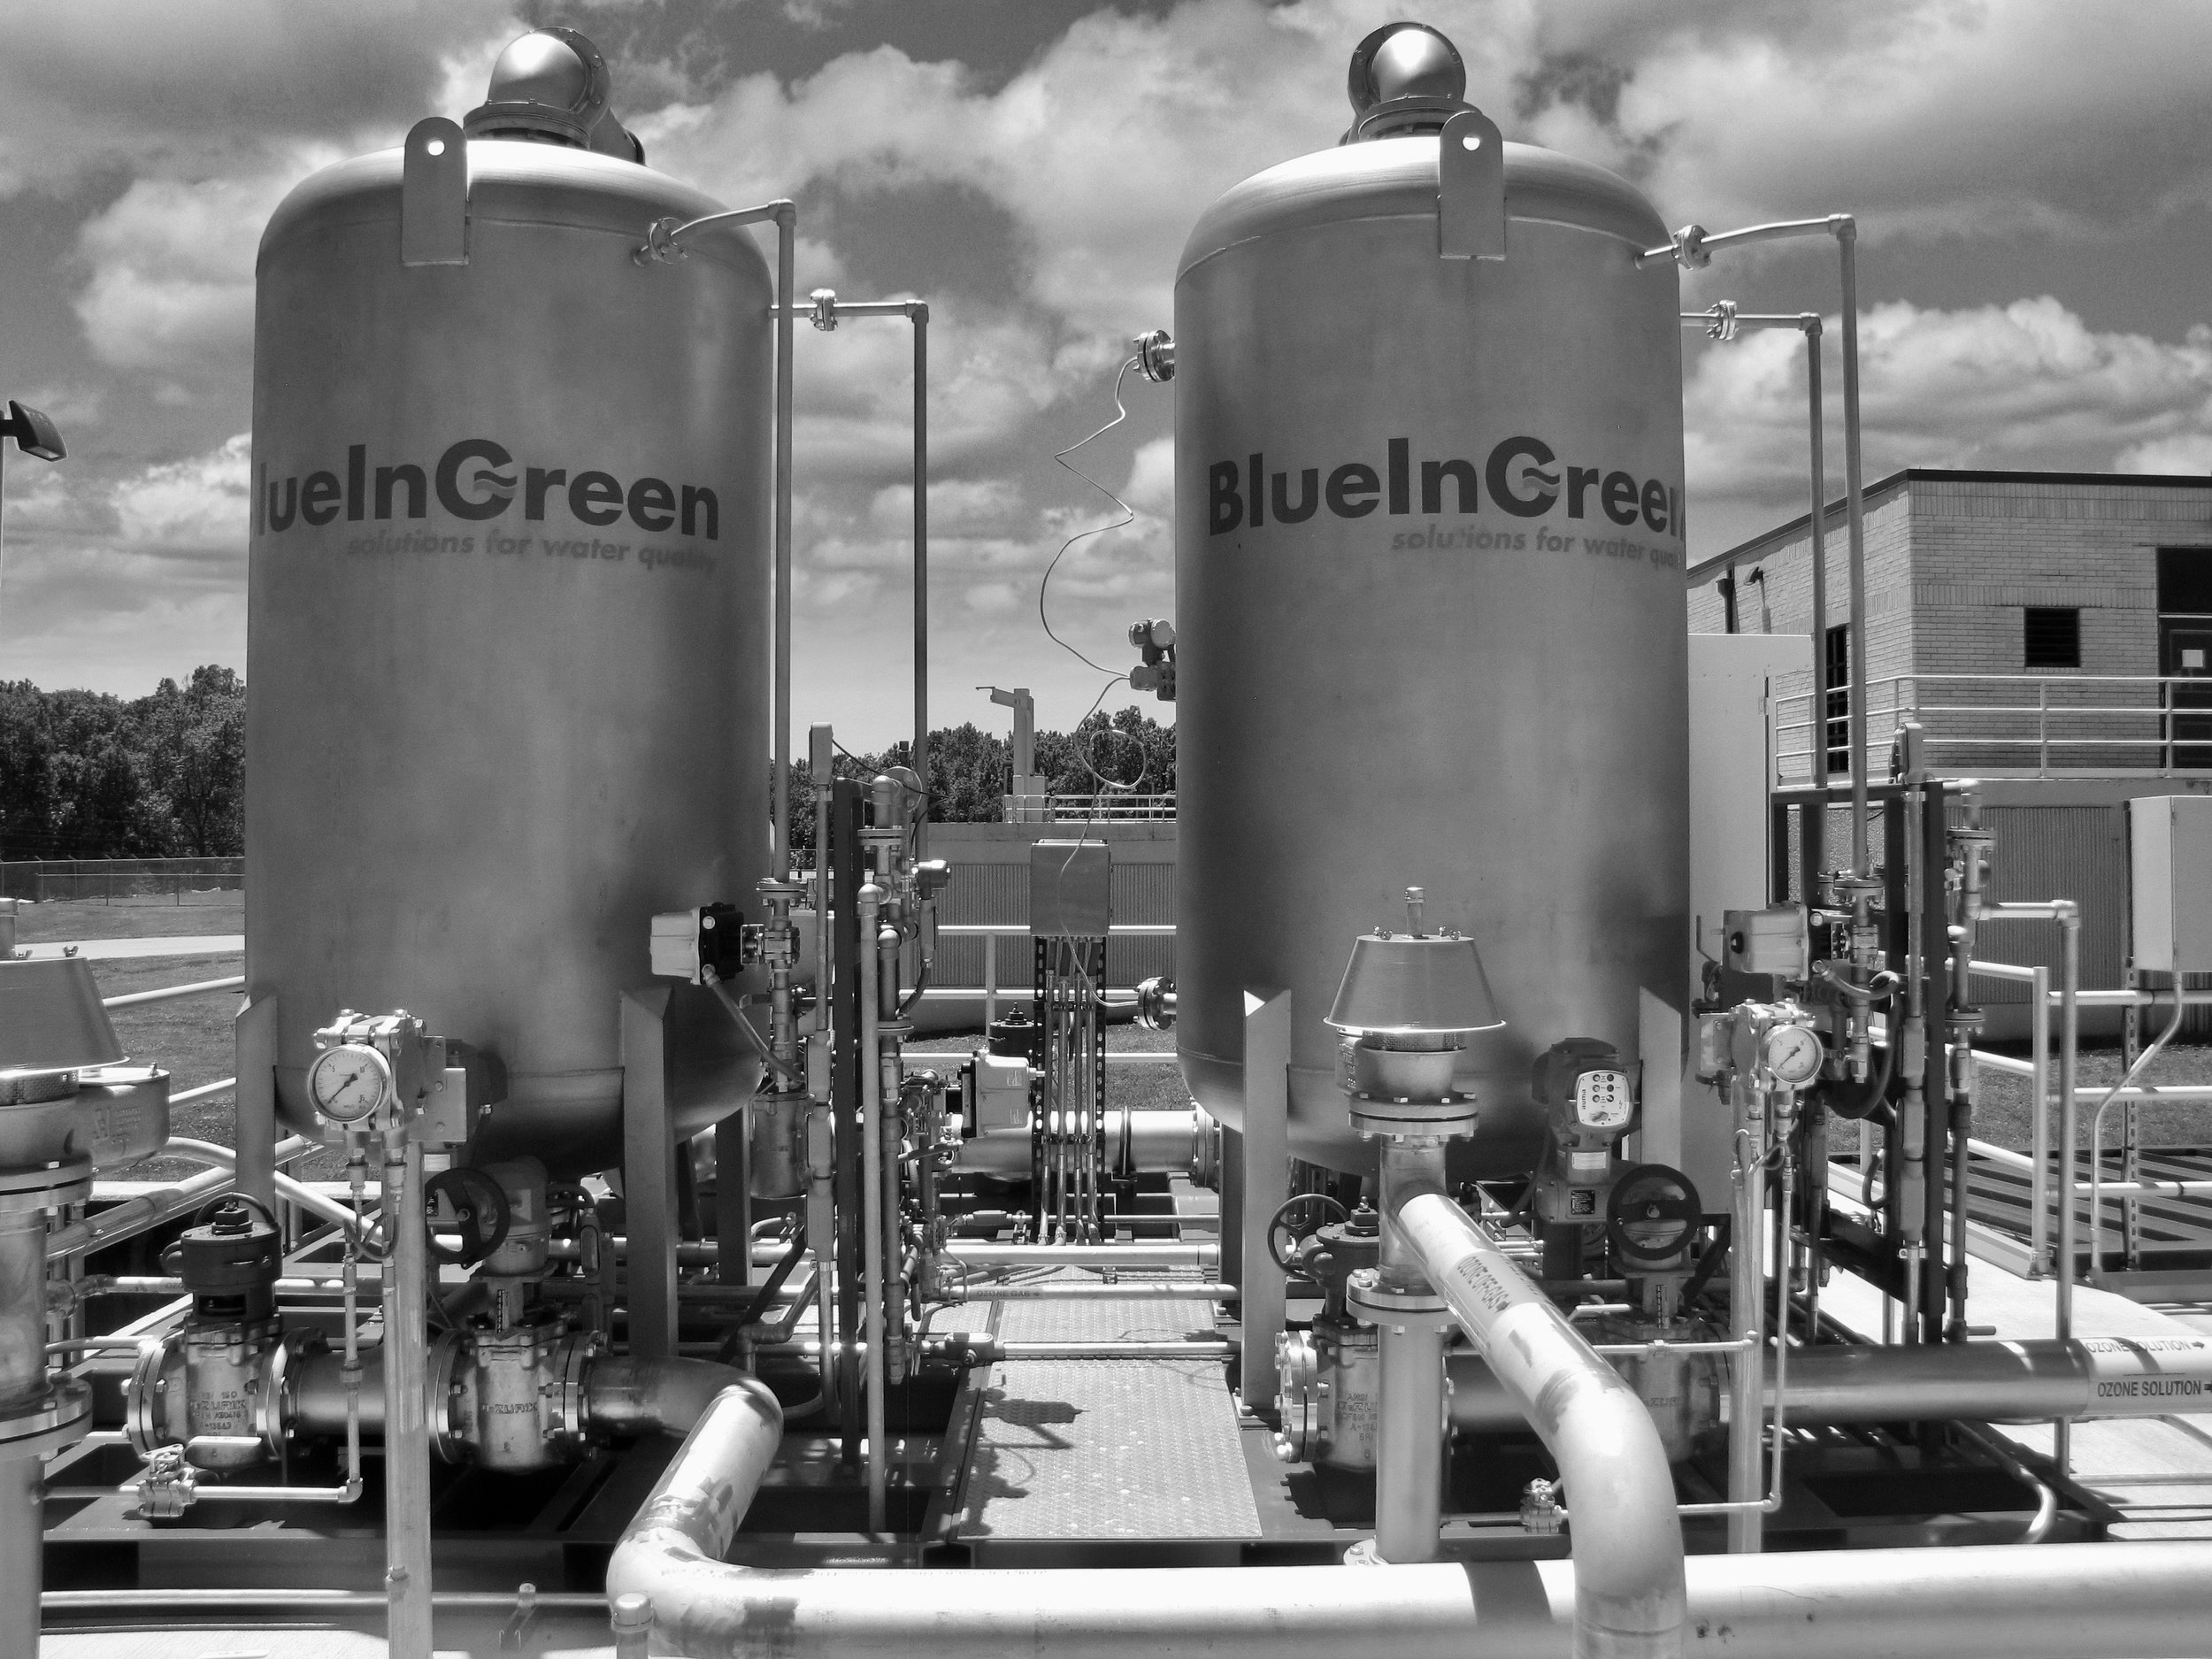 Curbing CECs.  Built on proven BlueInGreen gas dissolution technology, the HyDOZ®offers unparalleled advantages for ozonation of water and wastewater,including eliminating DBP issues or minimizing the discharge of contaminants of emerging concern.